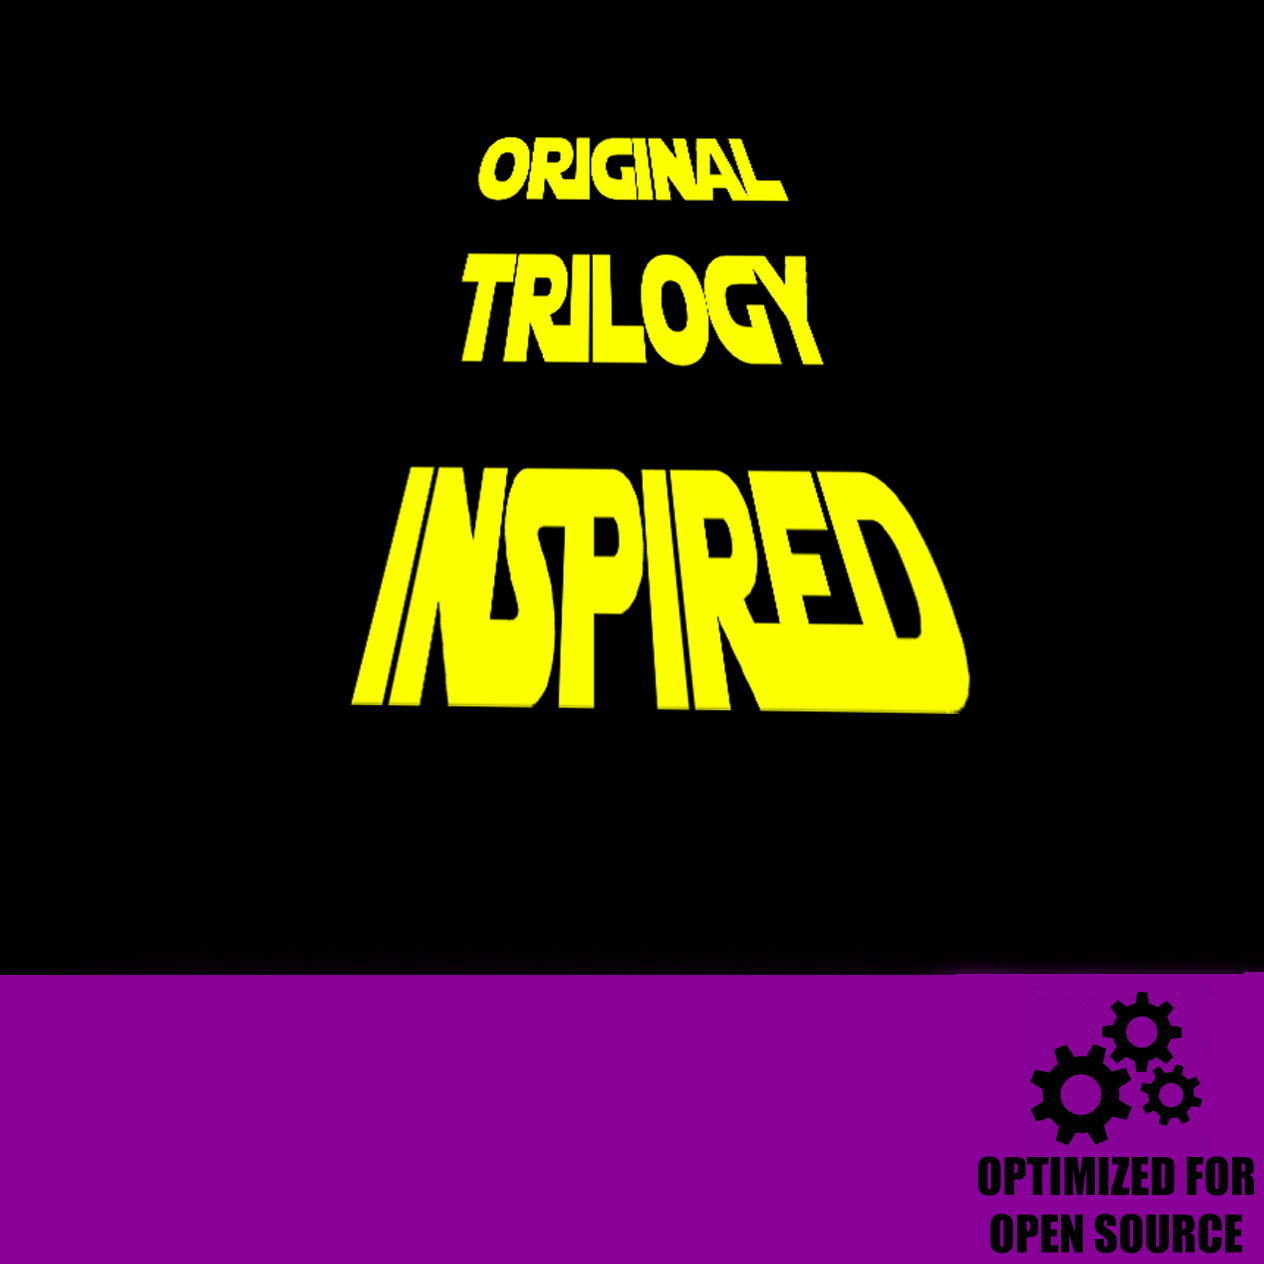 Original Trilogy Inspired for Open Source